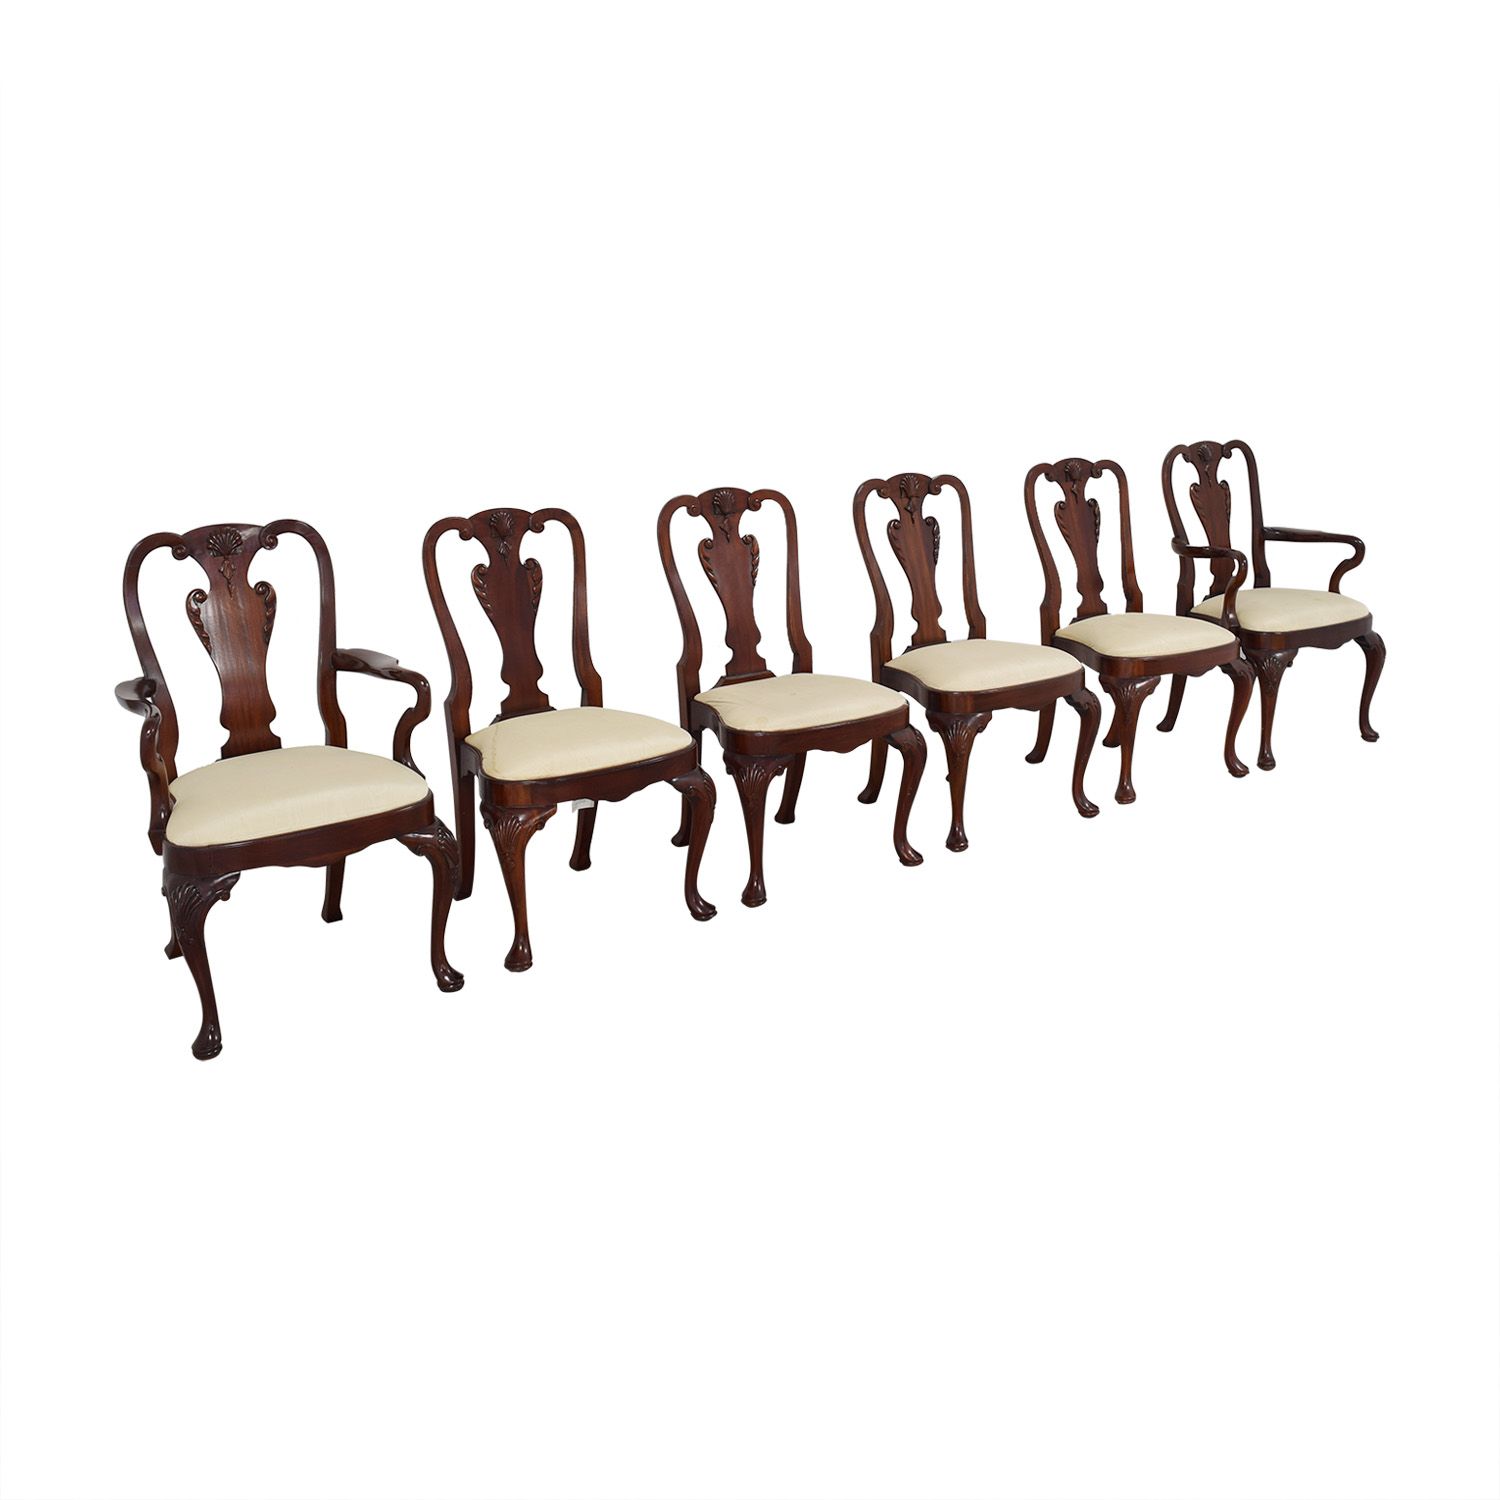 buy Maitland-Smith Dining Chairs Maitland-Smith Dining Chairs